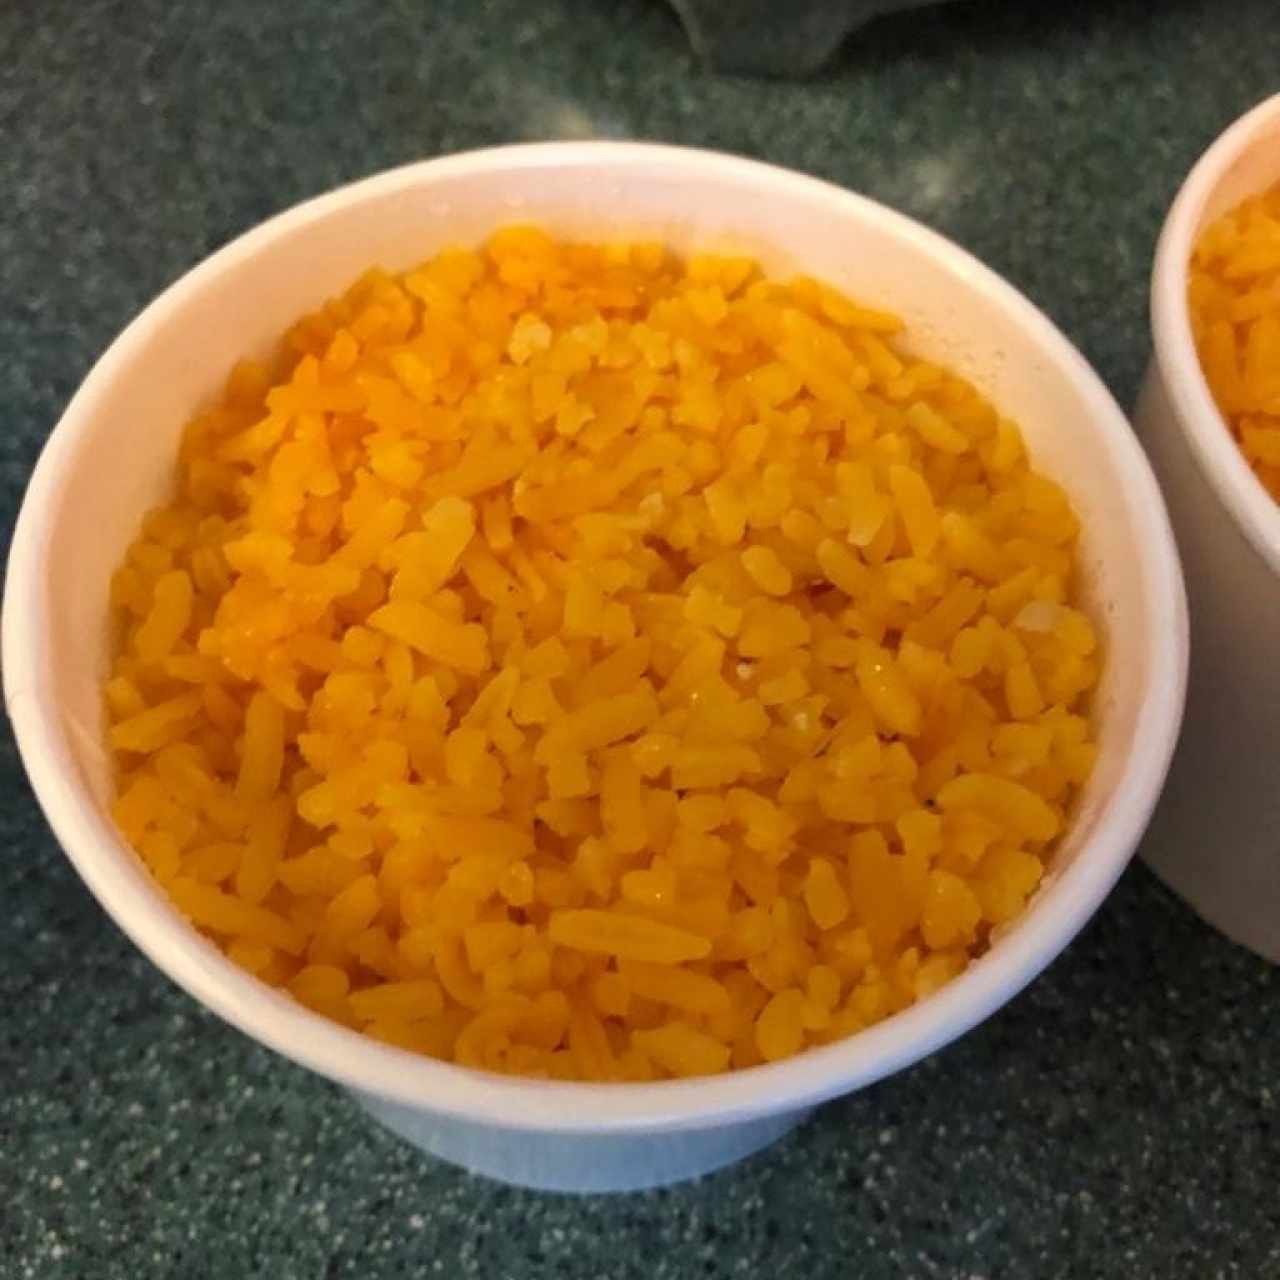 Guarniciones - Arroz amarillo